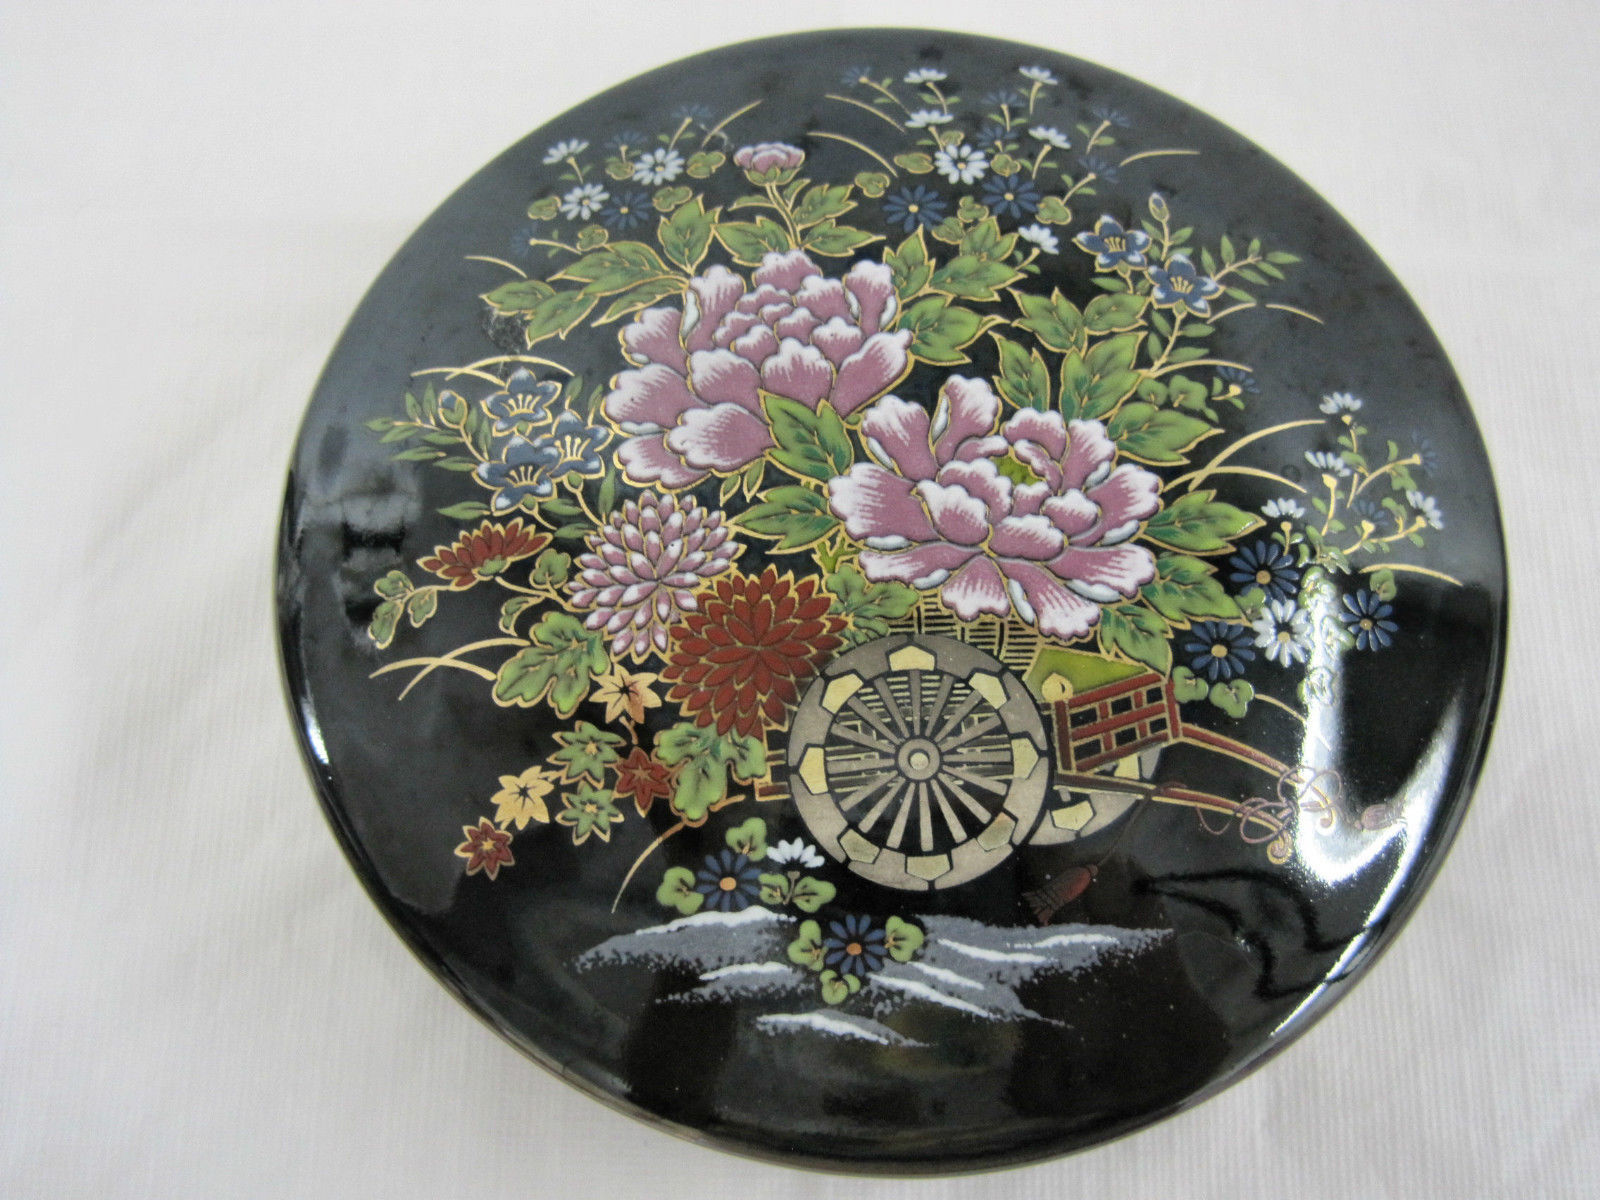 Antique Japanese Imperial Kutani Round Covered Trinket Box Dish Container